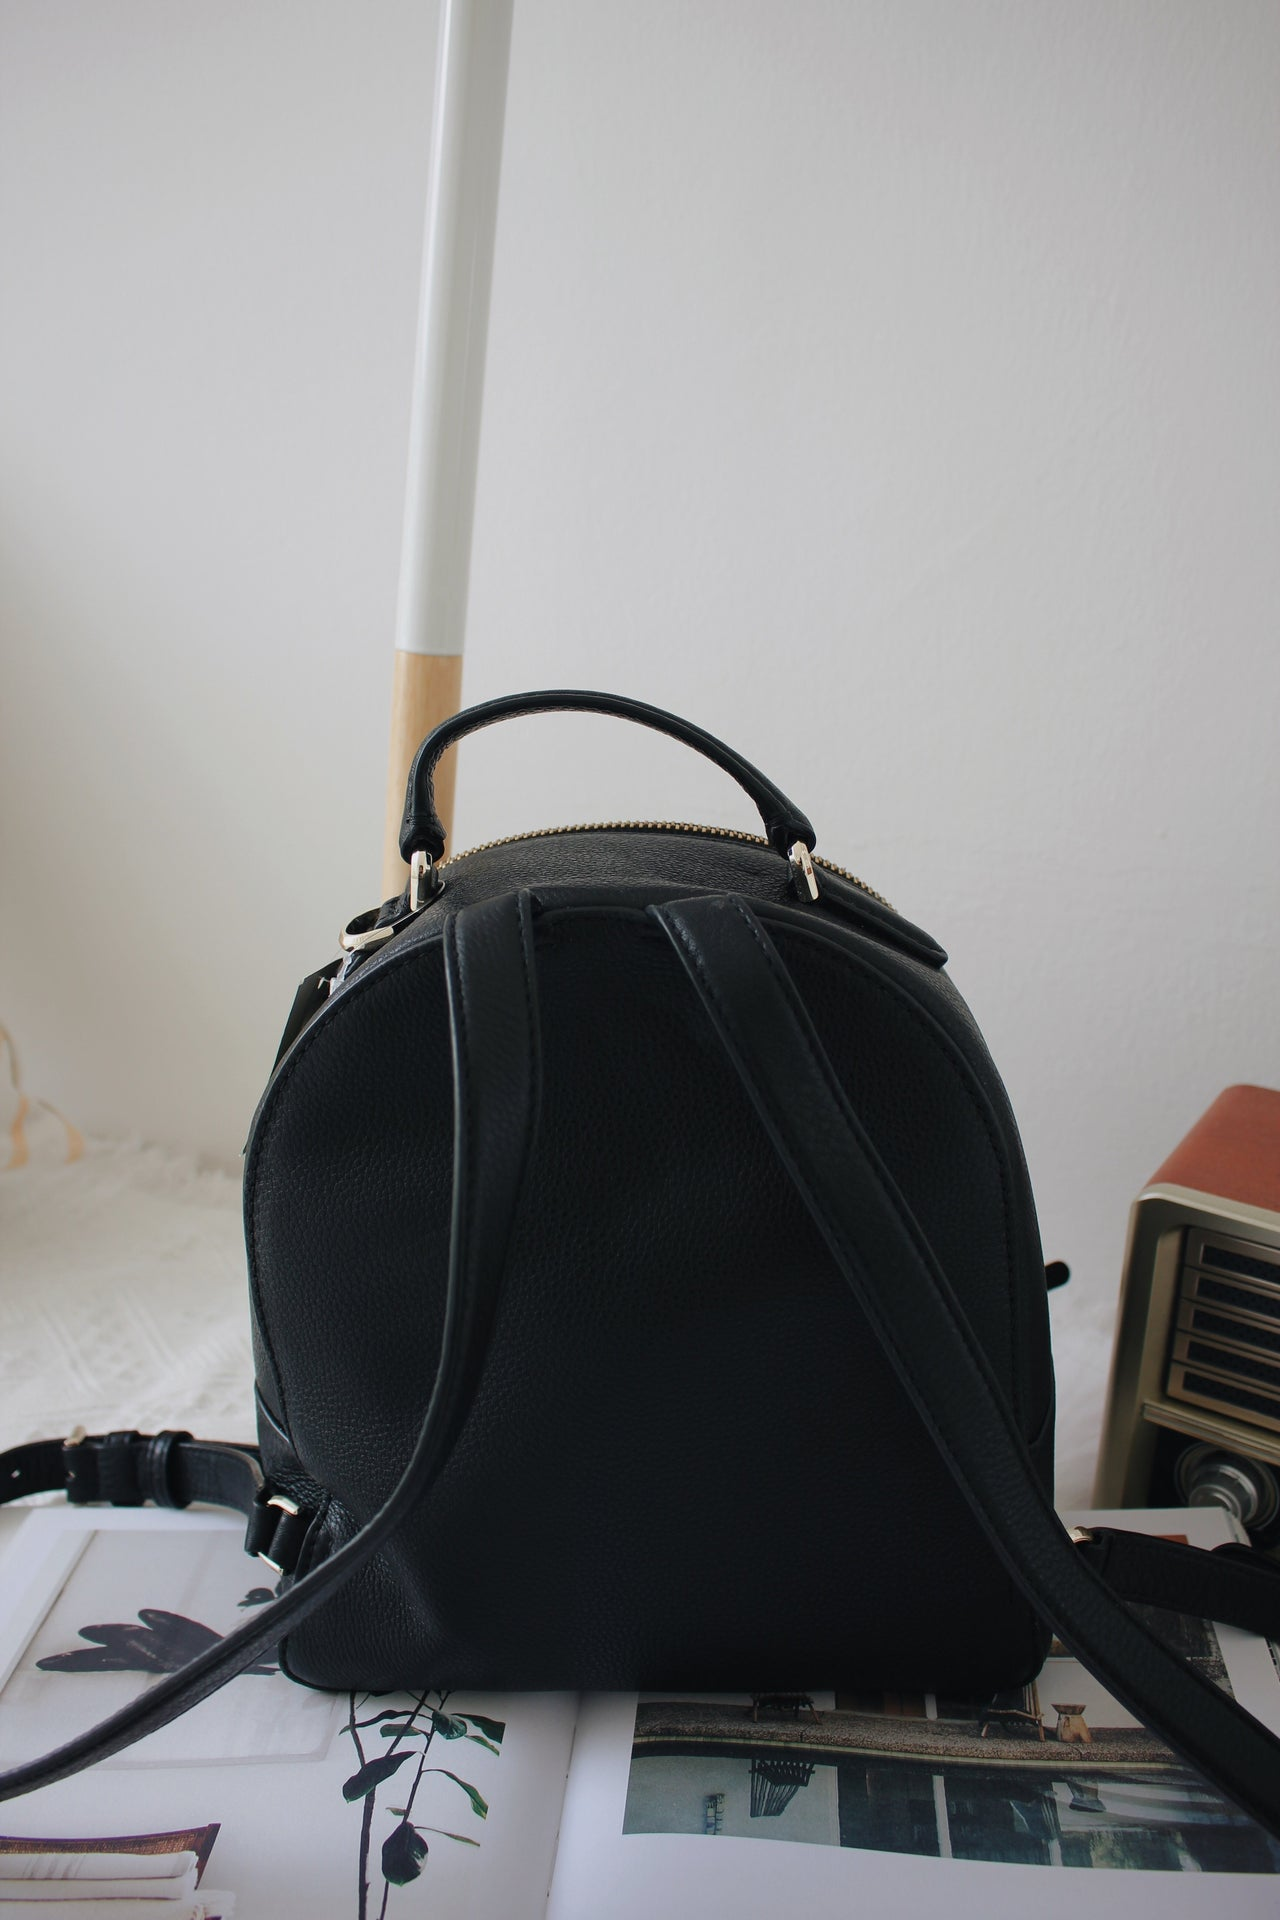 Kate Spade New York Jackson Medium Backpack Pebbled Leather - LovelyMadness Clothing Online Fashion Malaysia